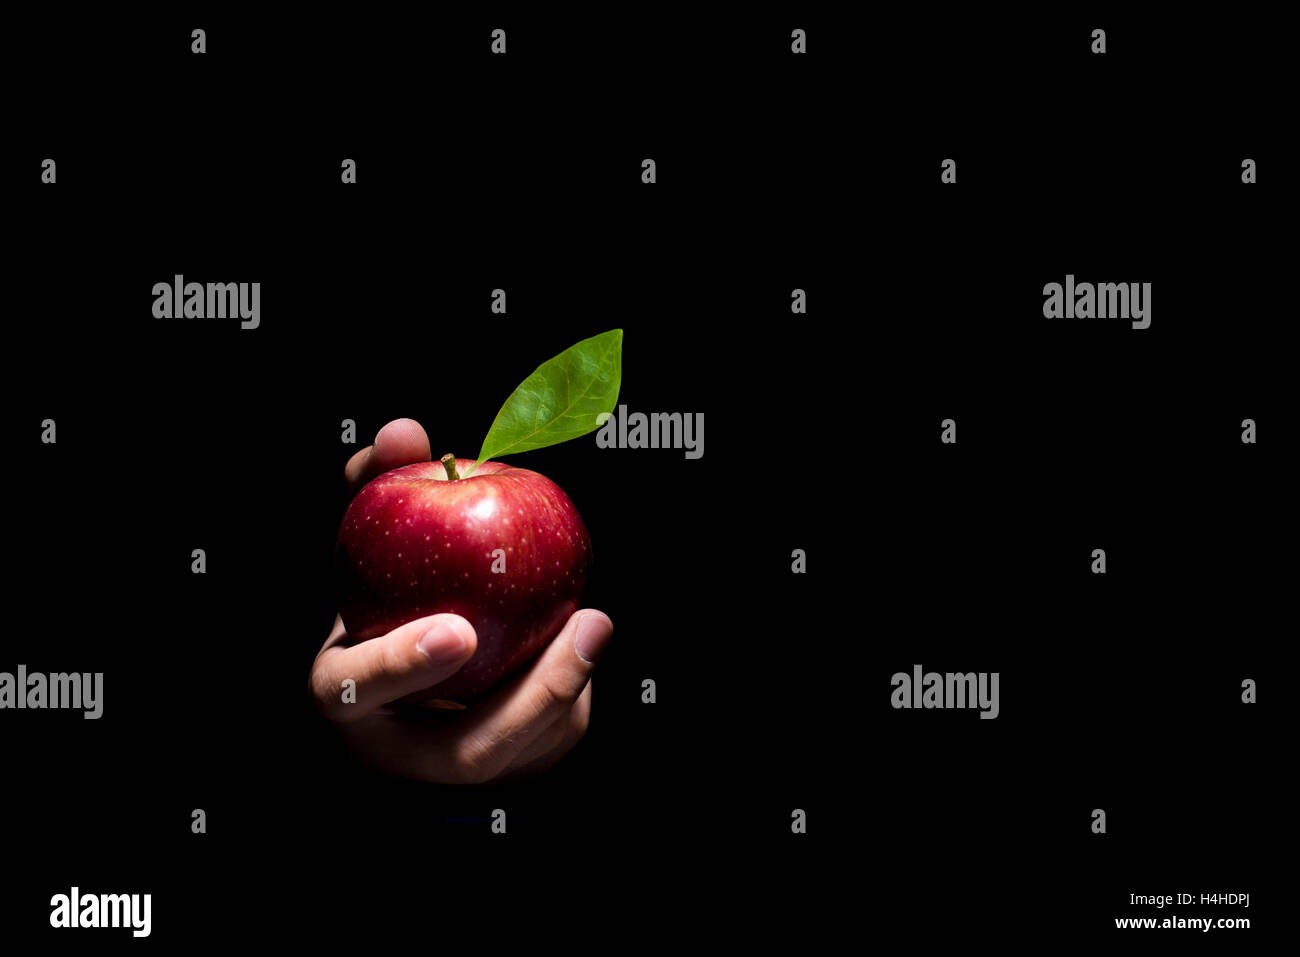 hand offering a red apple on a black background stock photo